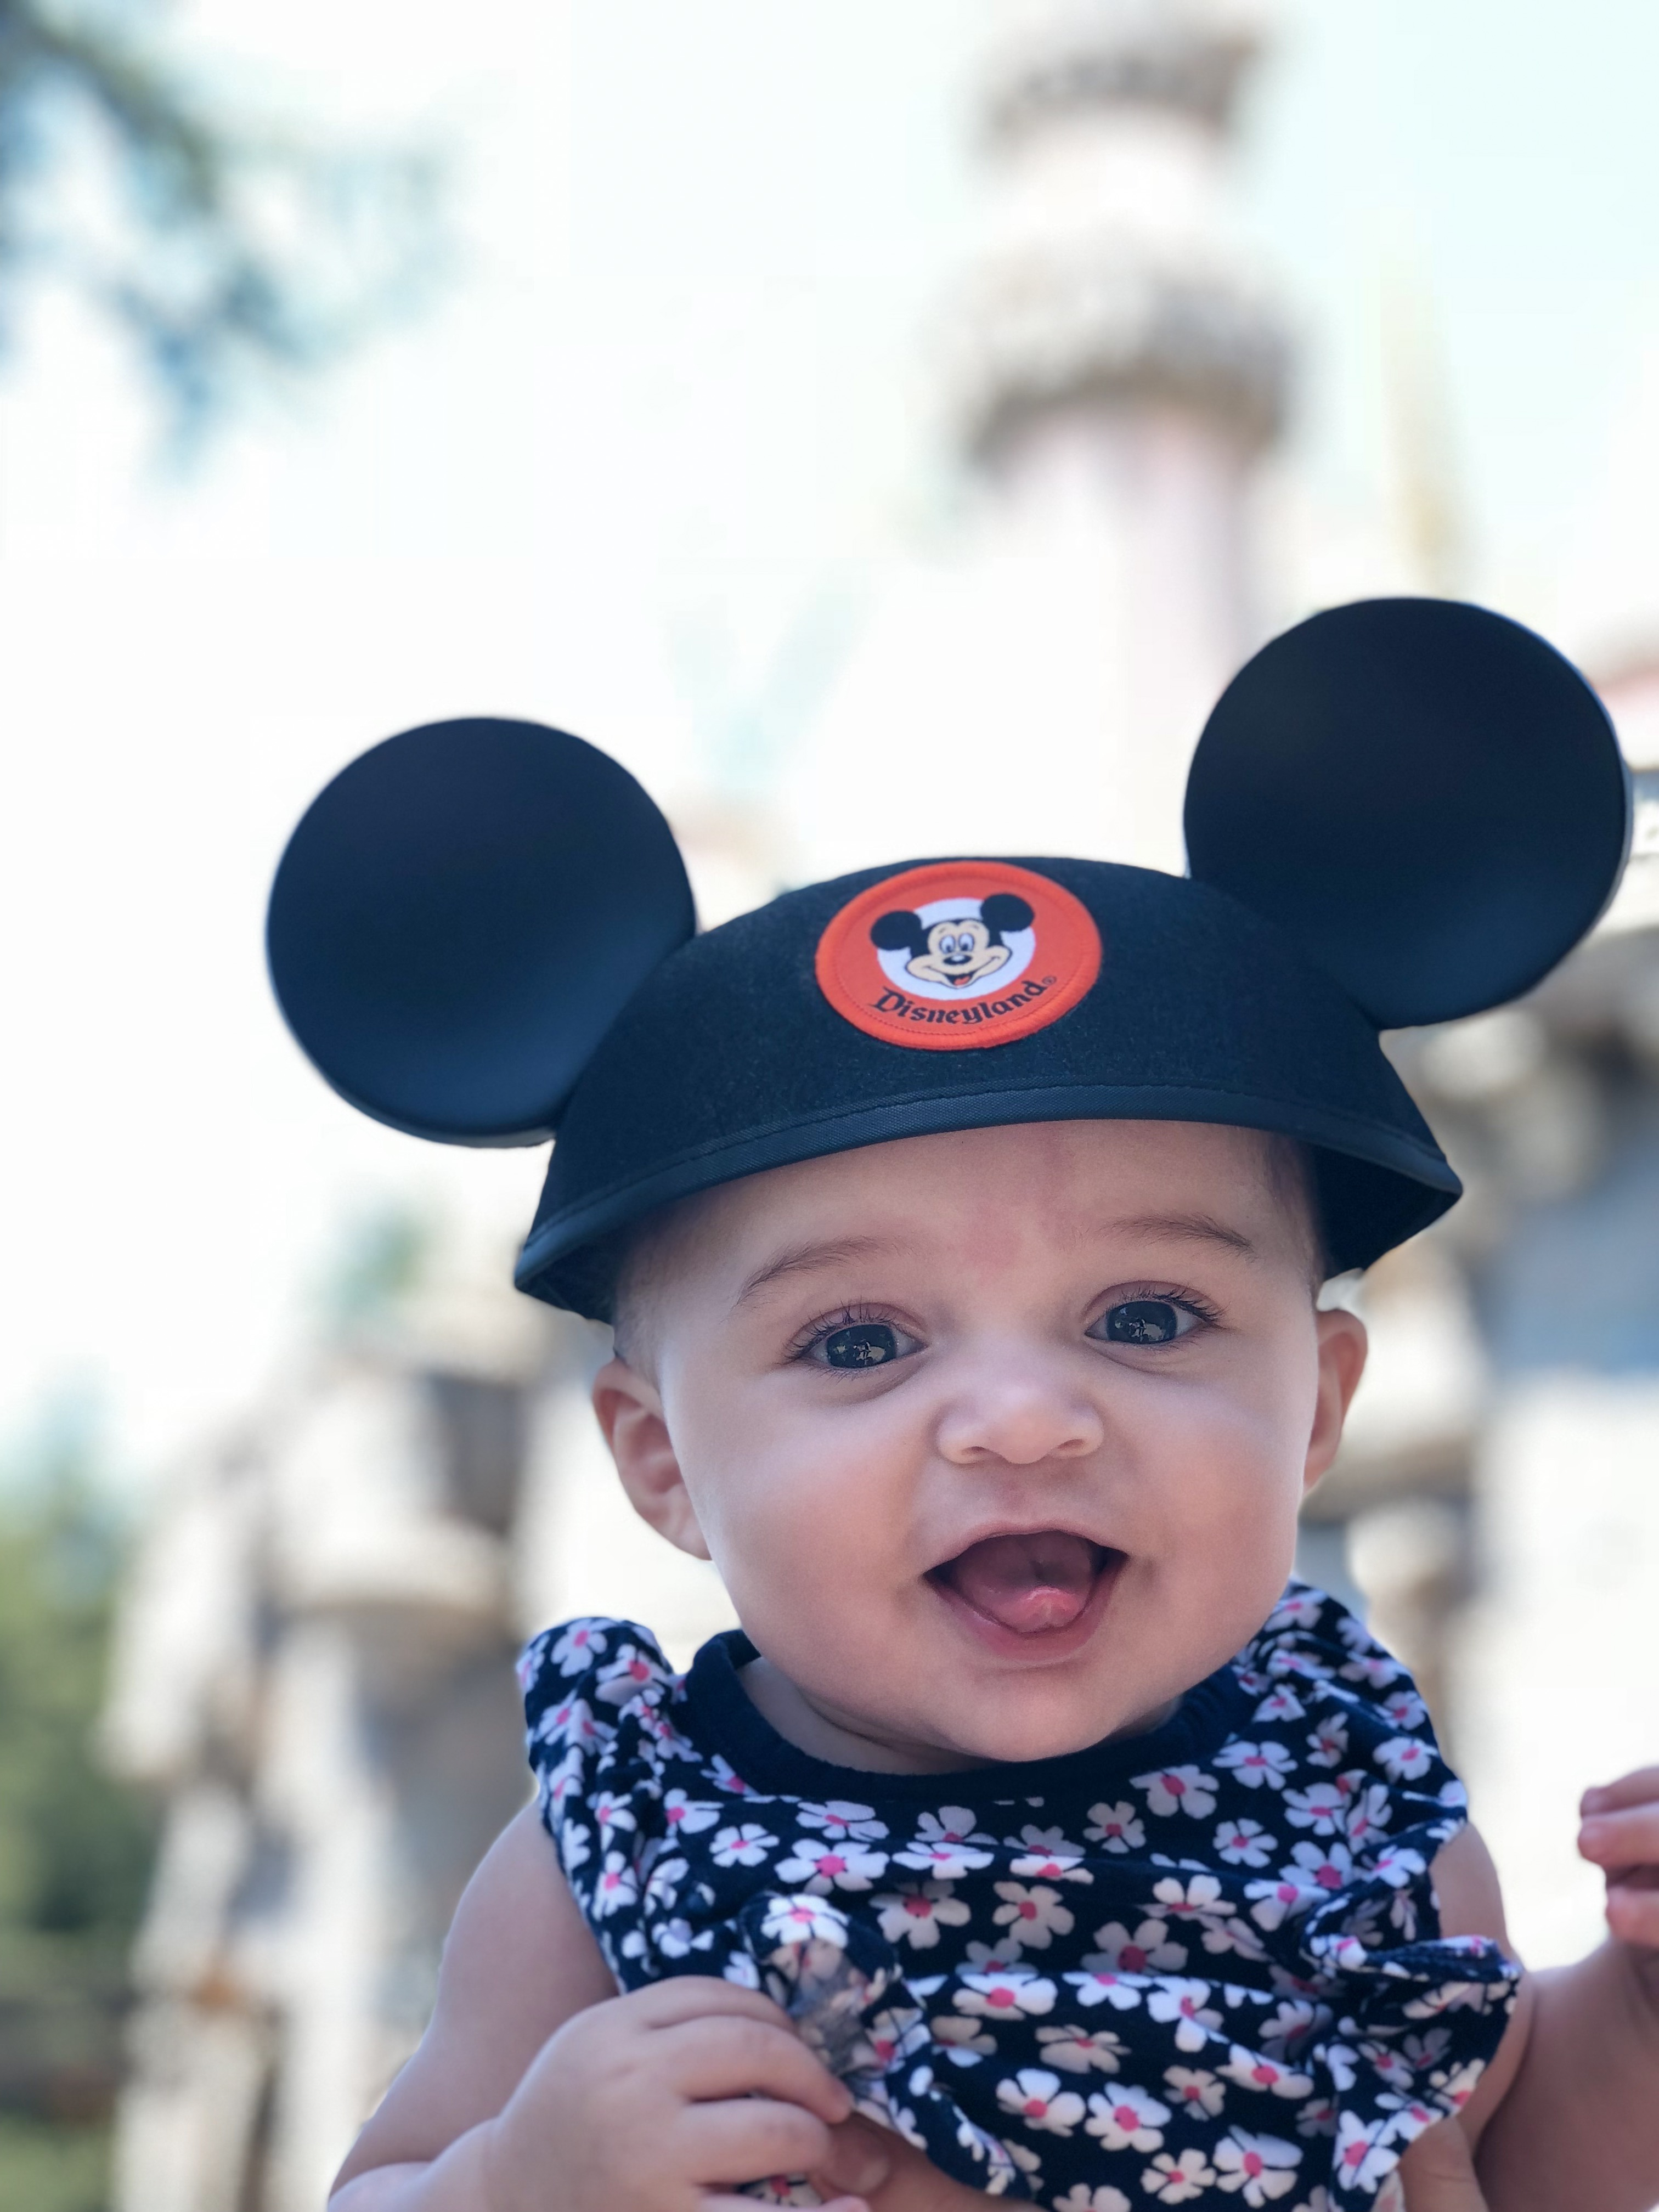 Top 5 Tips for Annual Passholders Taking a Baby to Disneyland